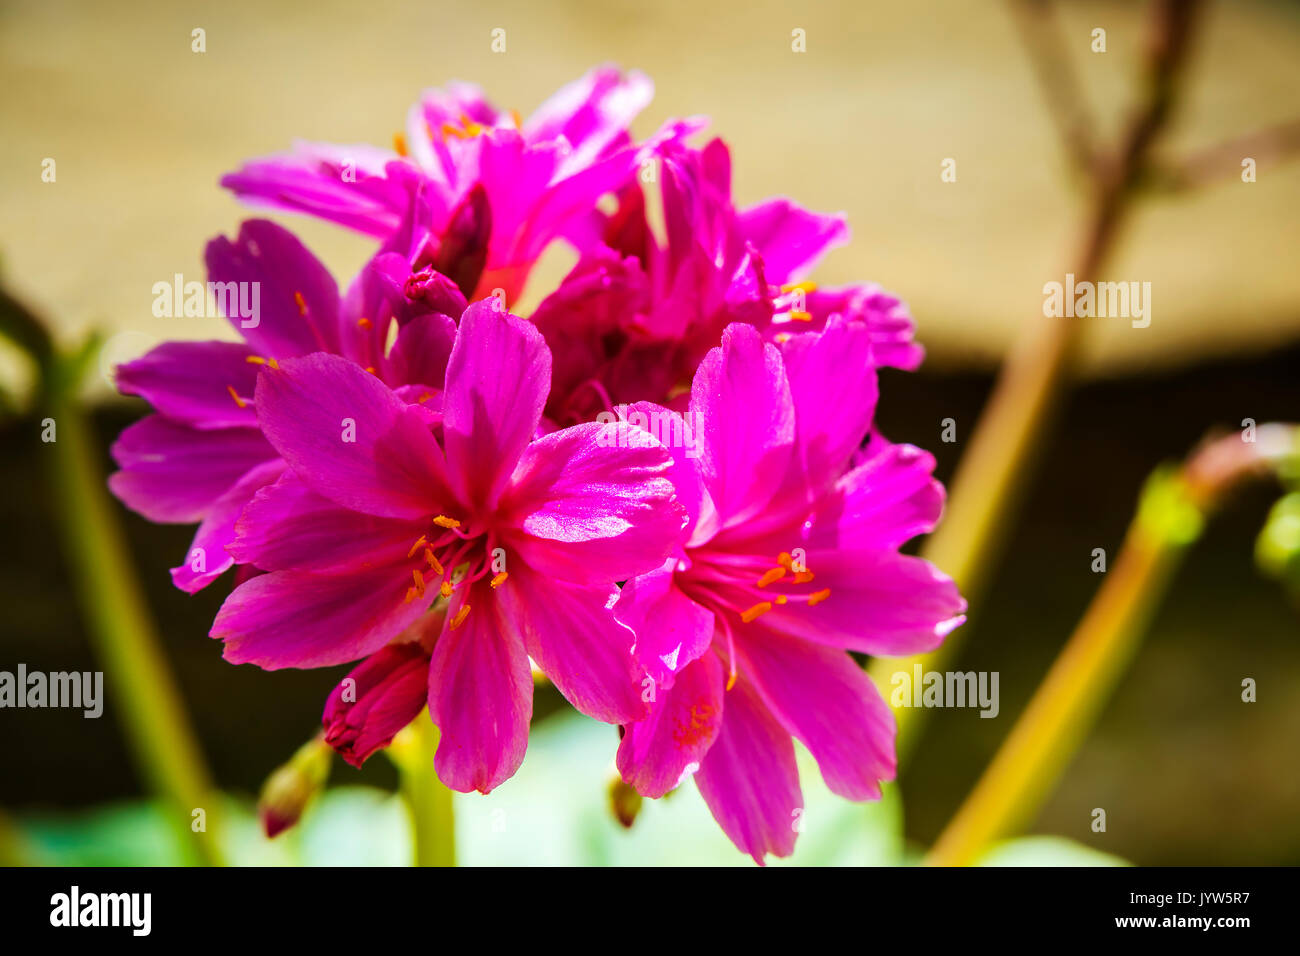 Small Pink Flowers Of An Alpine Perennial Plant Lewisia Elise Stock